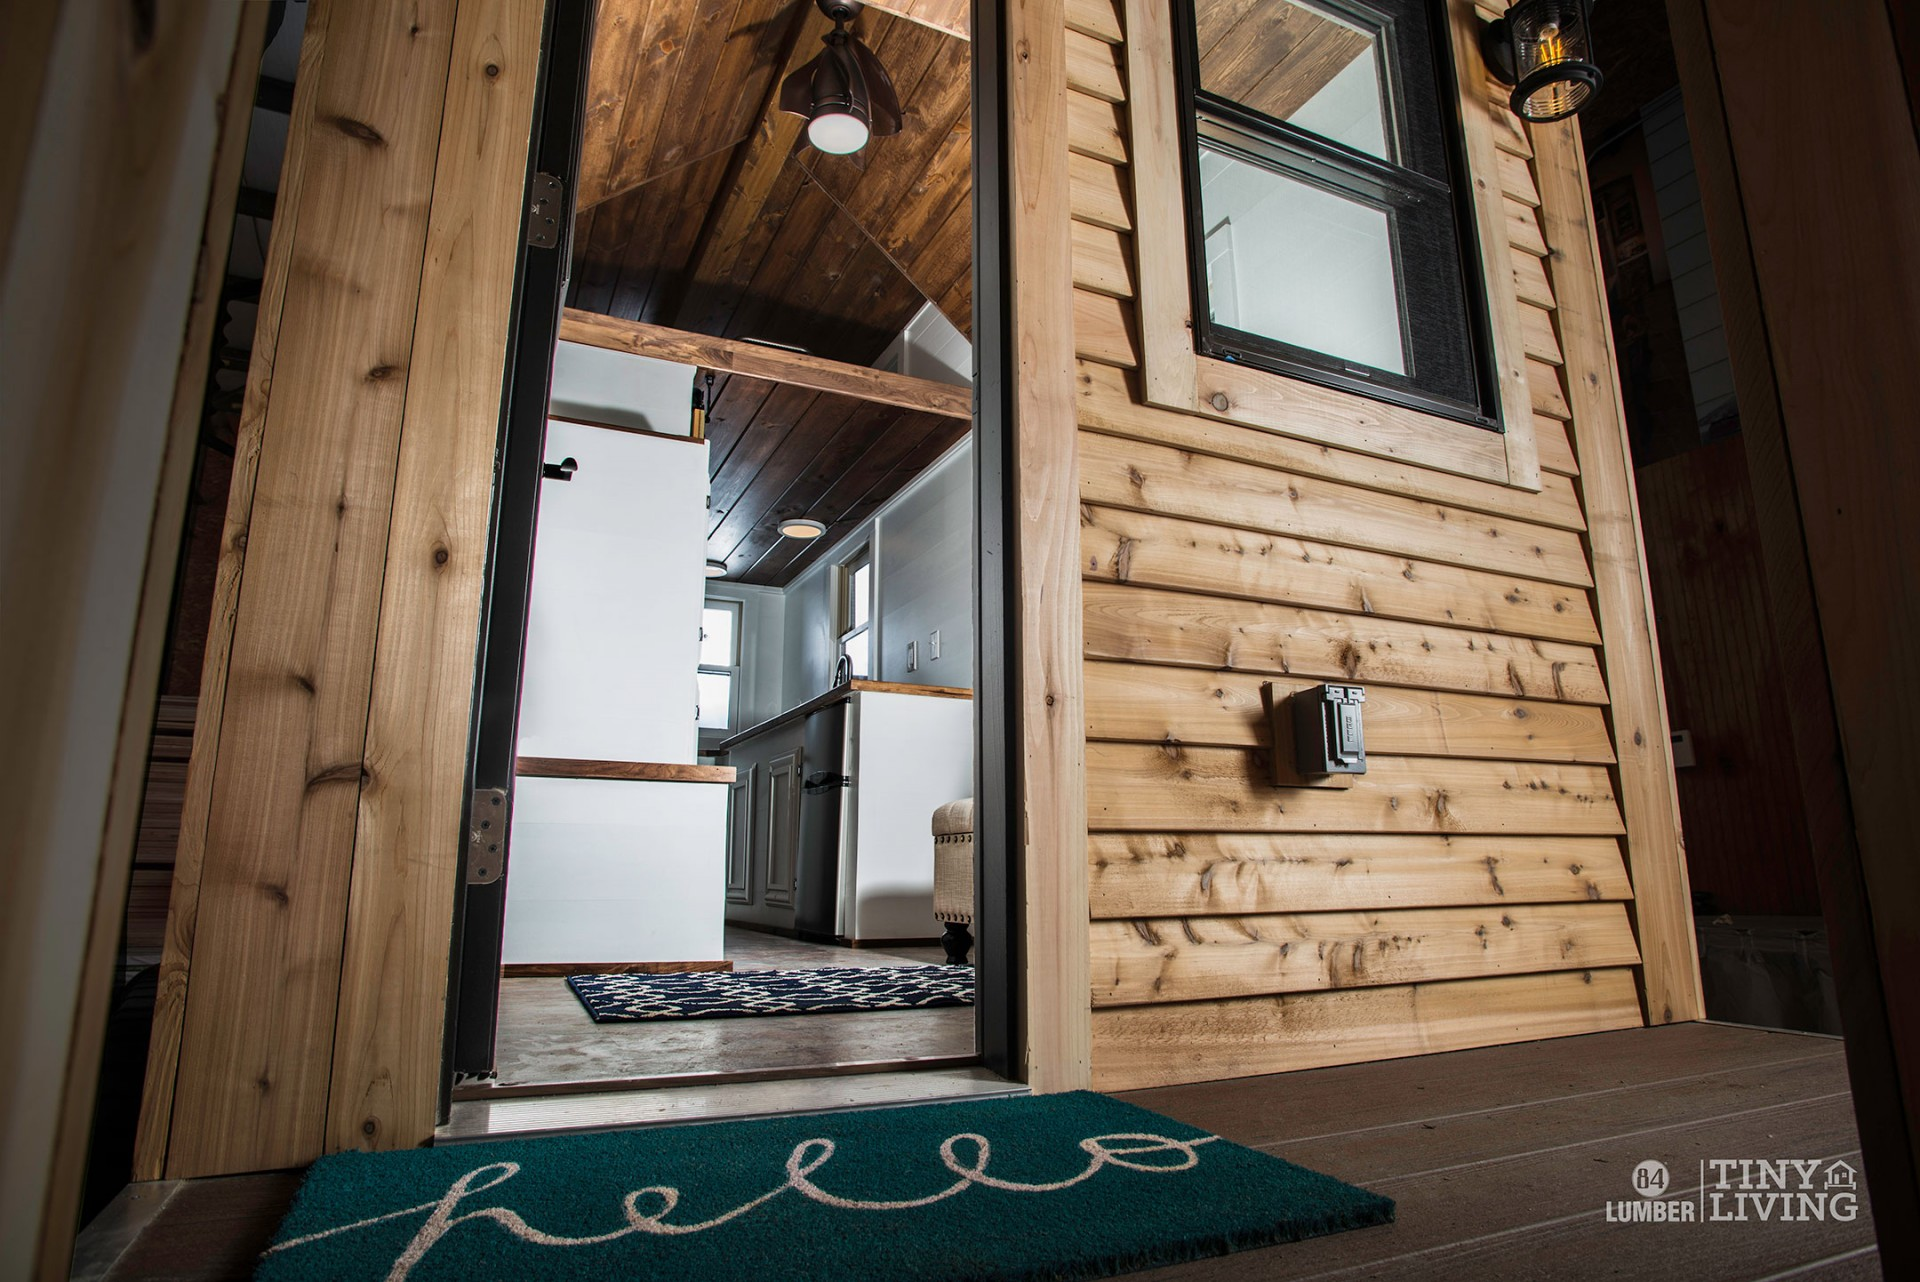 Building Materials Supplier 84 Lumber Debuts Custom Tiny Homes |  Residential Products Online Nice Look